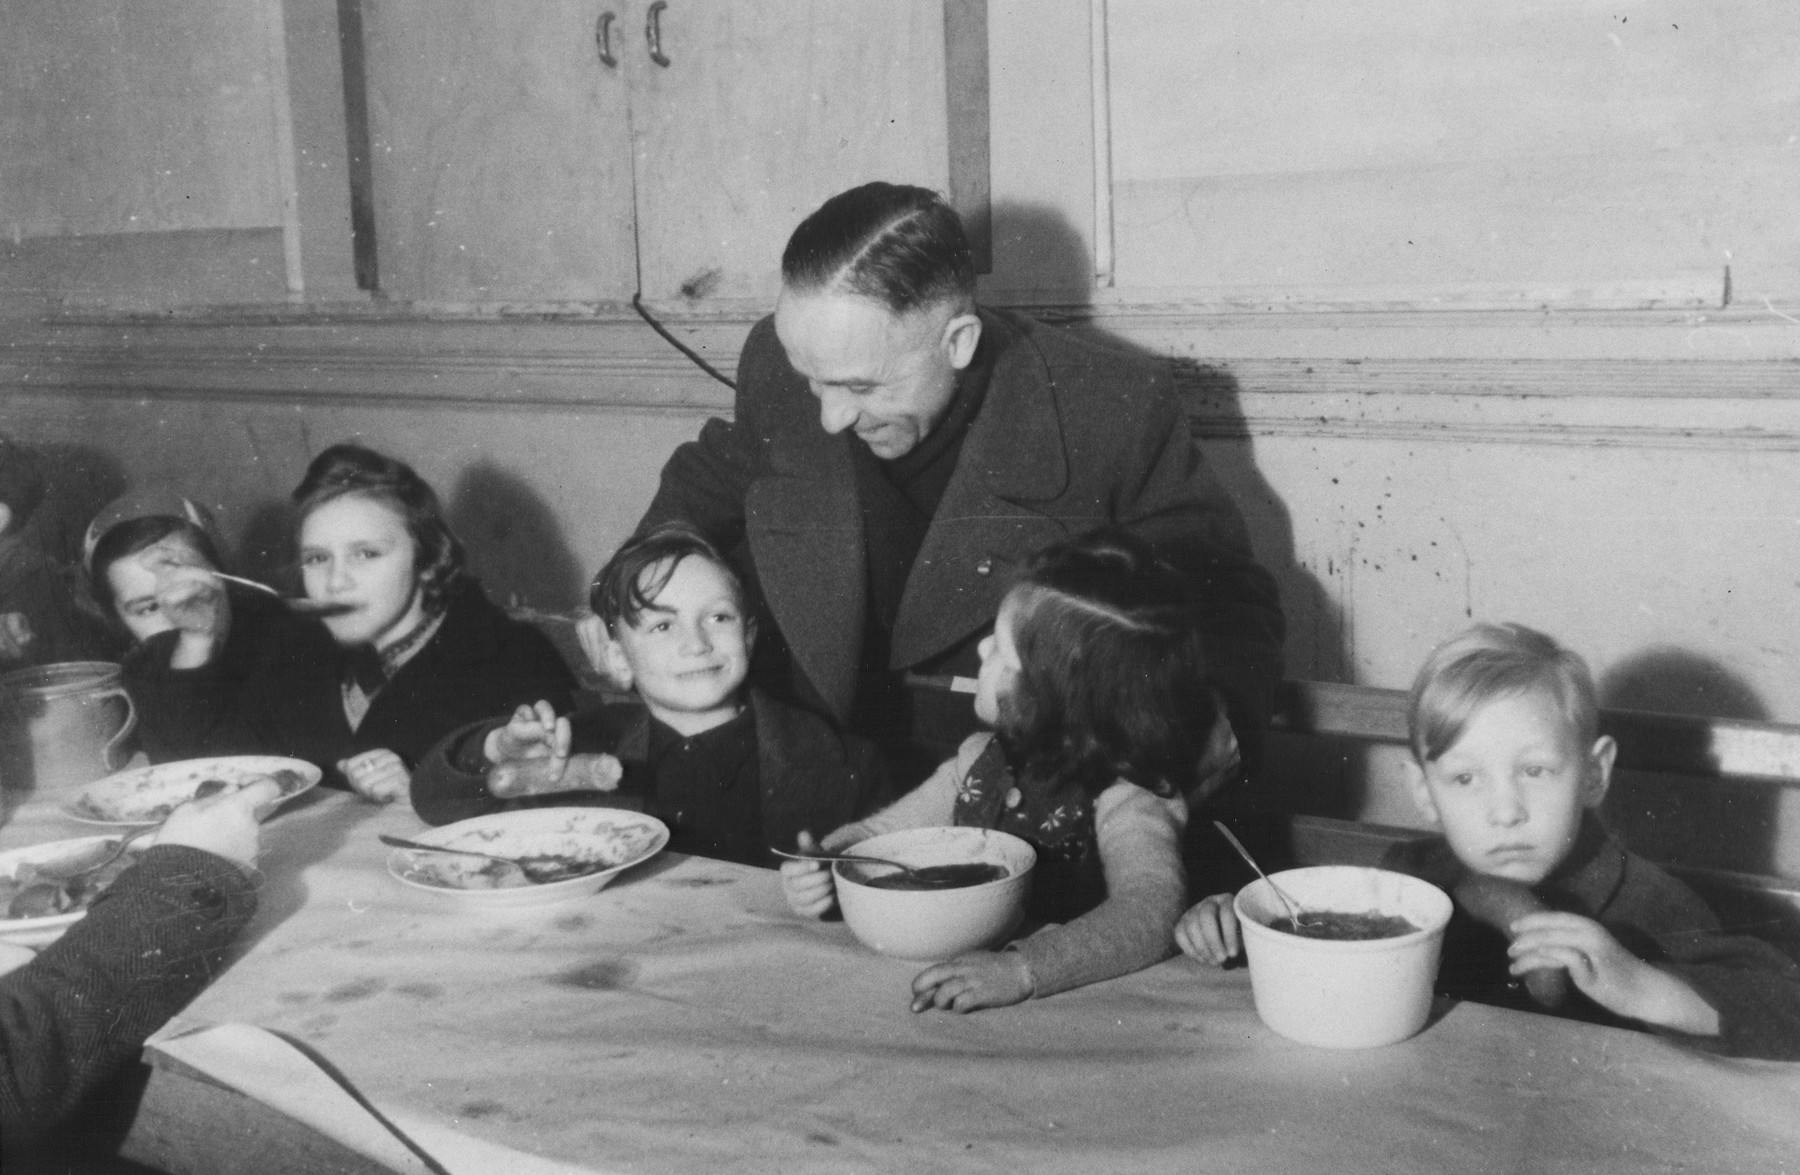 Julius Meyer (standing) meets with DP children eating lunch in in the Jewish (Deutsche Juedische Jugend) school at the Berlin Chaplains' Center.